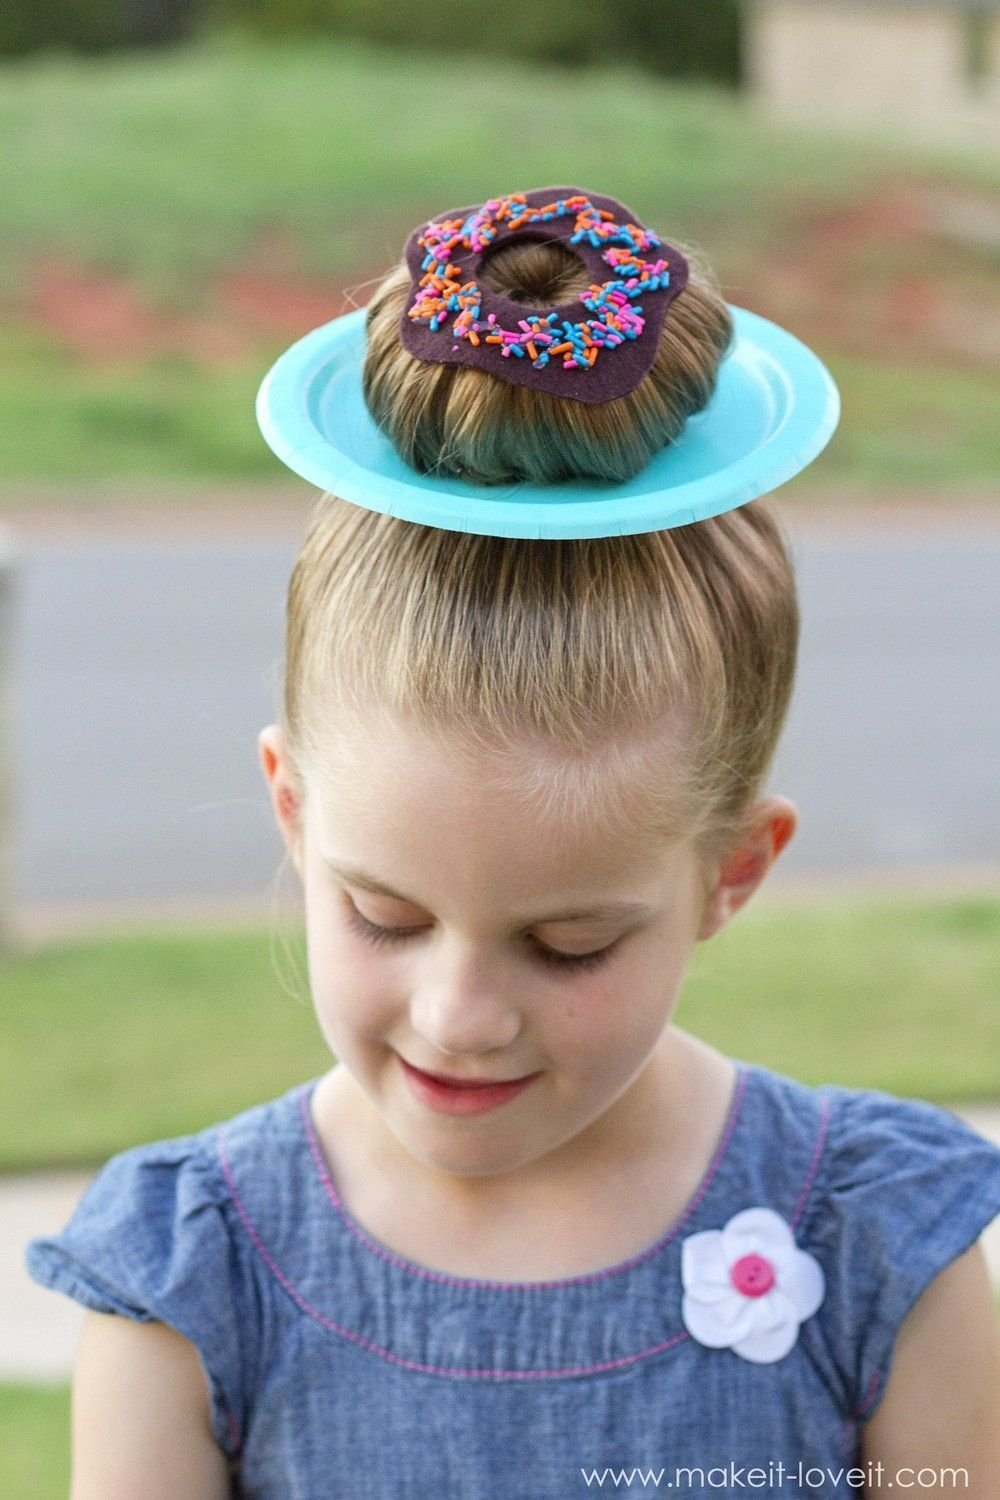 10 Elegant Crazy Hair Day Ideas For Long Hair 25 clever ideas for wacky hair day at school including 14 2020